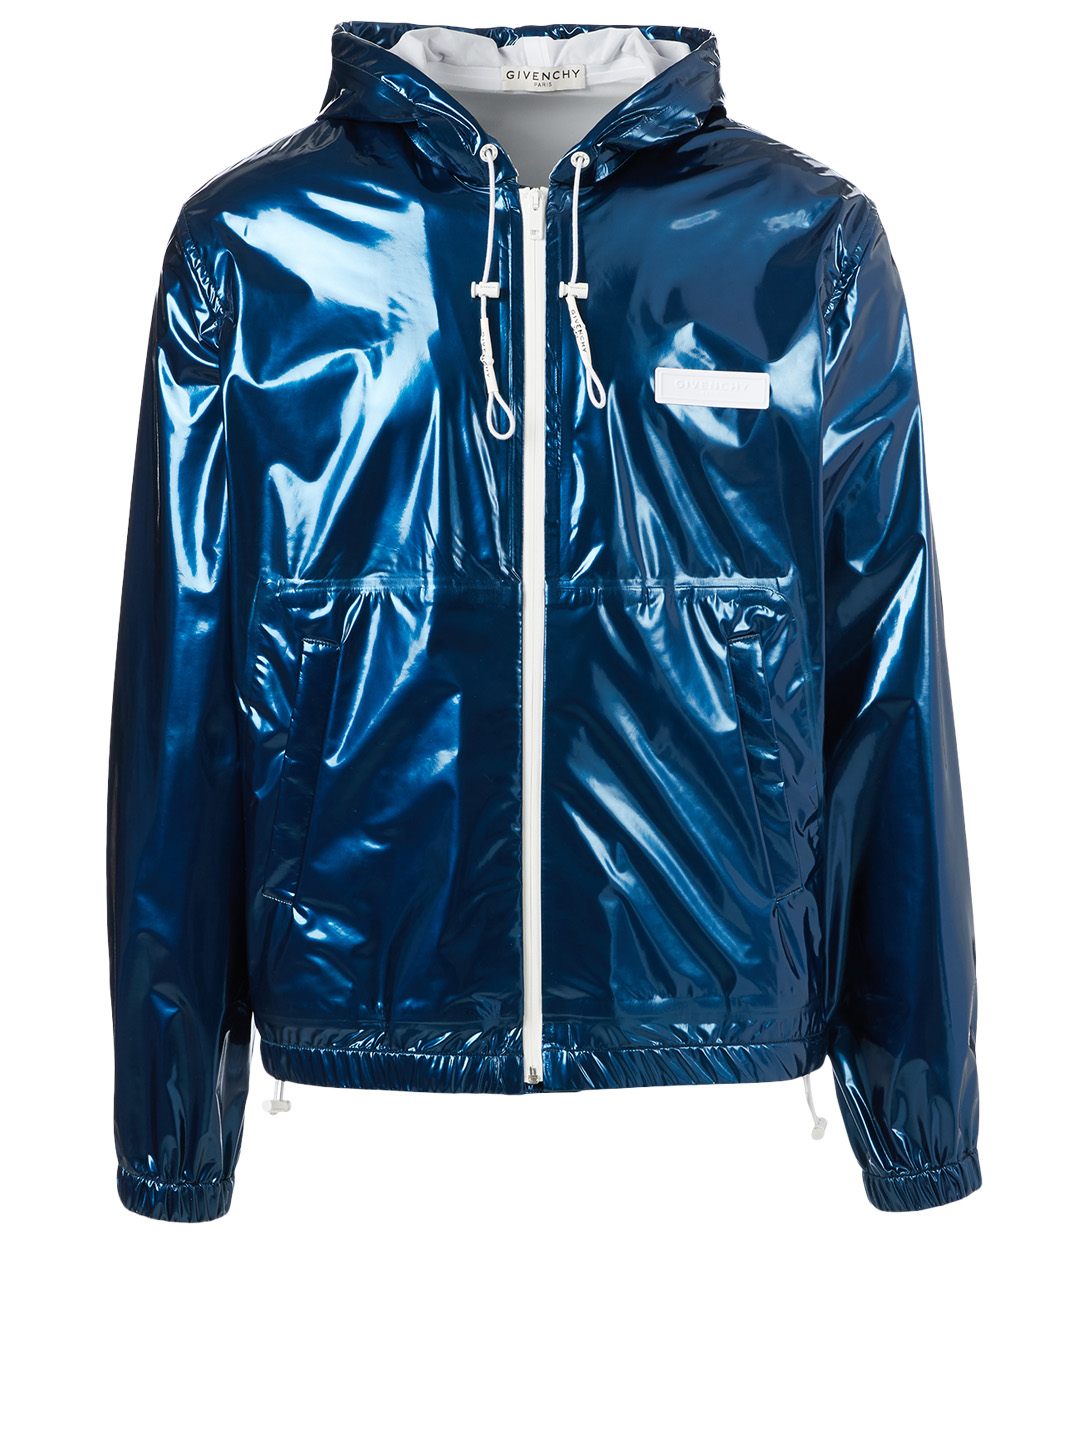 GIVENCHY Varnished Windbreaker With Contrast Detail Men's Blue